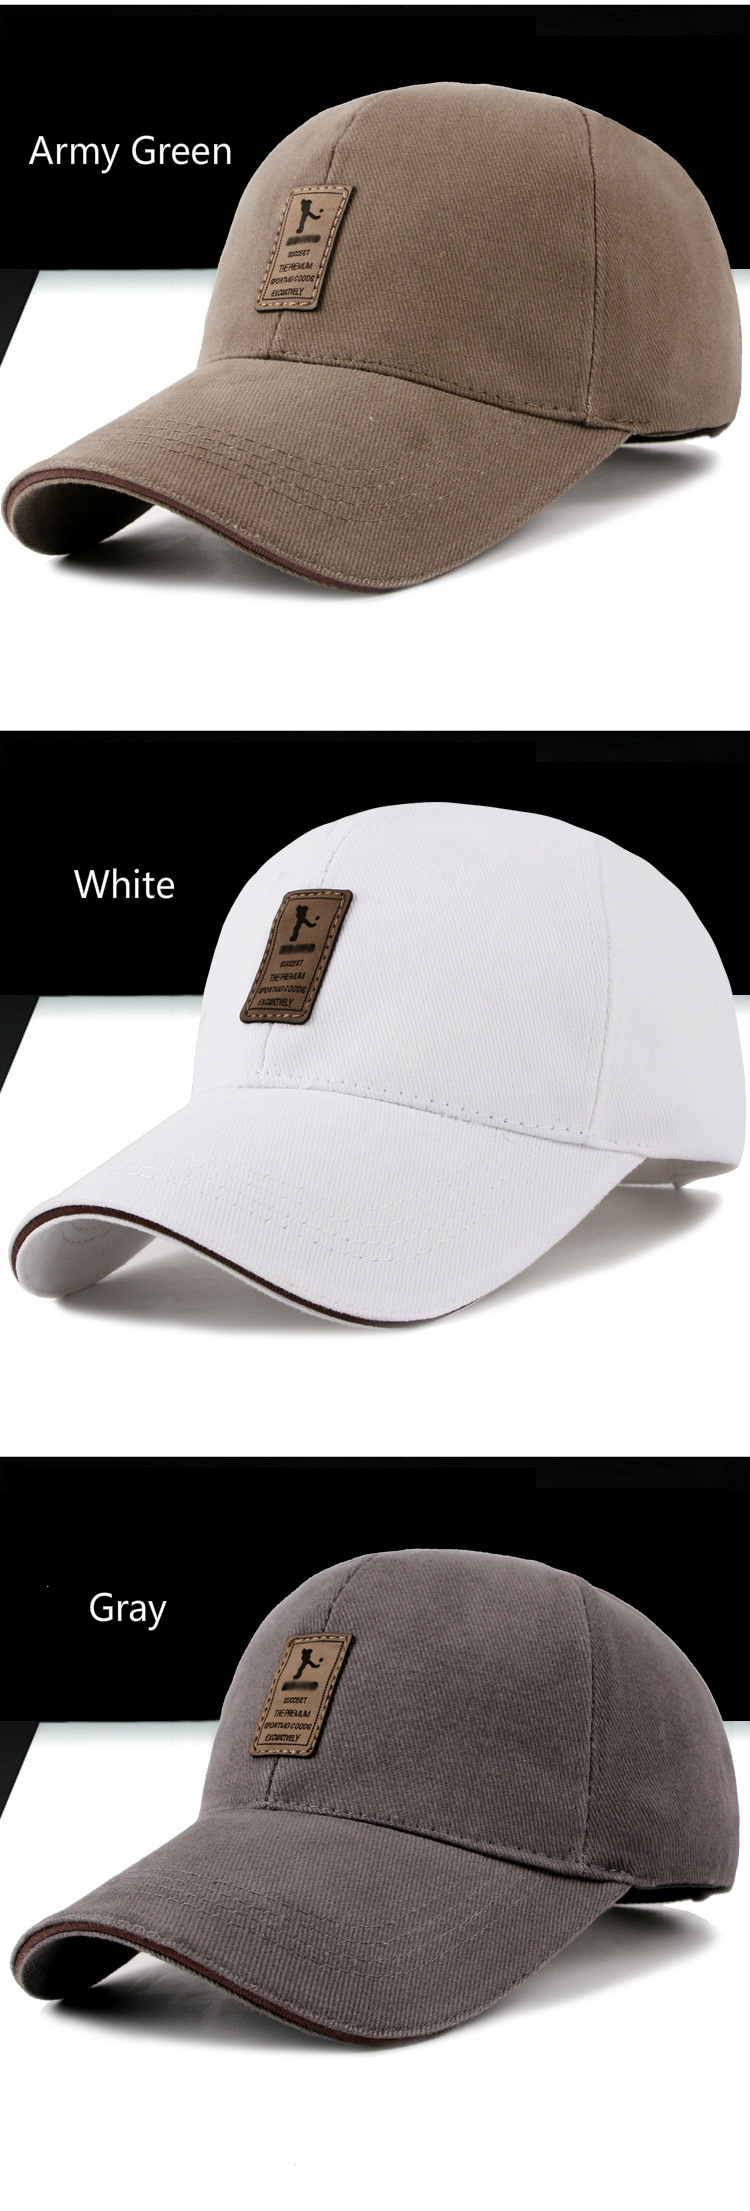 7 Colors Golf Hats for Men and Women 22